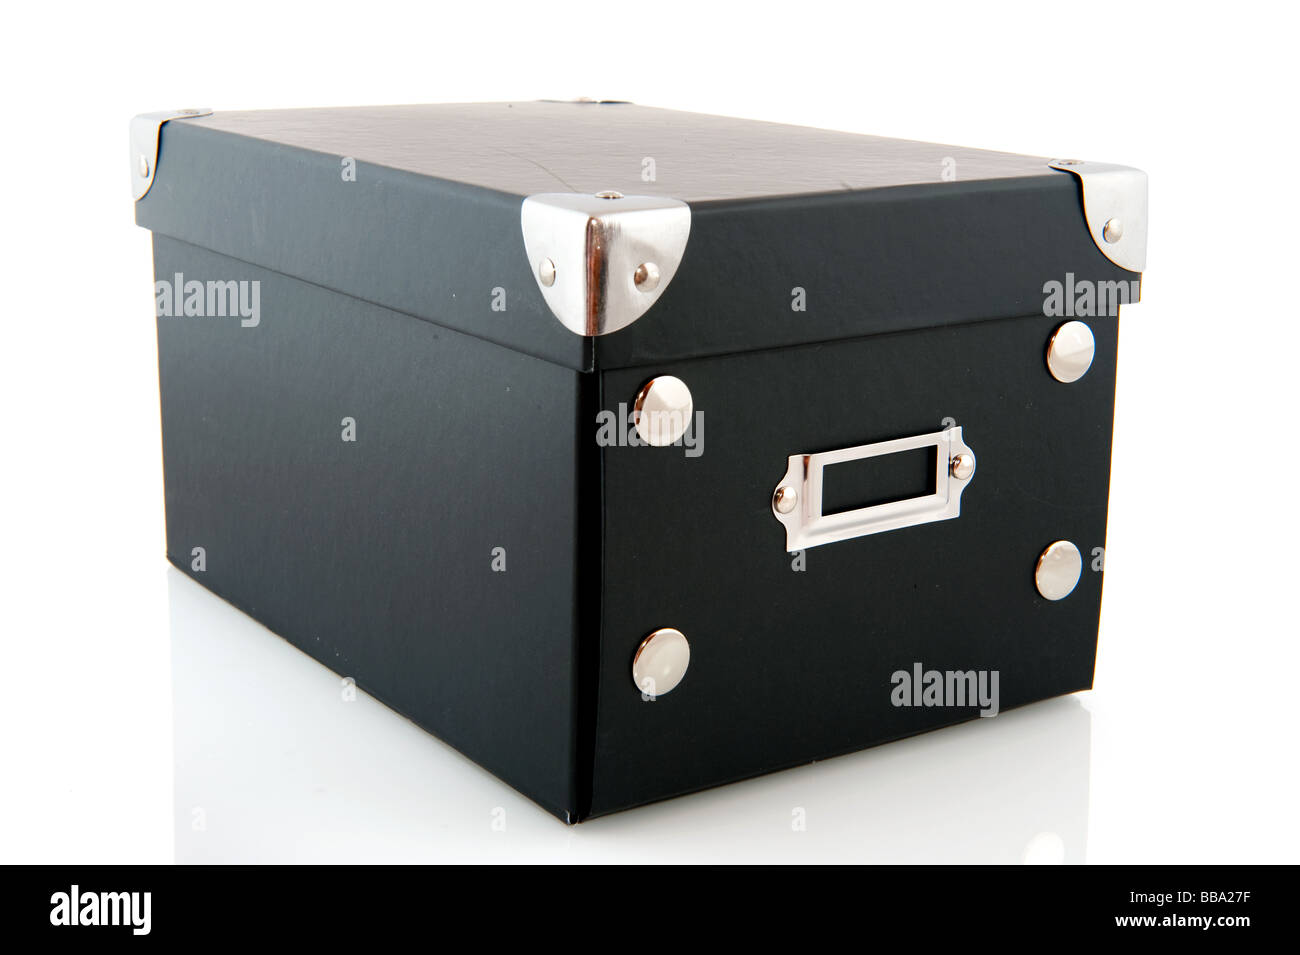 Black box with cover isolated over white - Stock Image